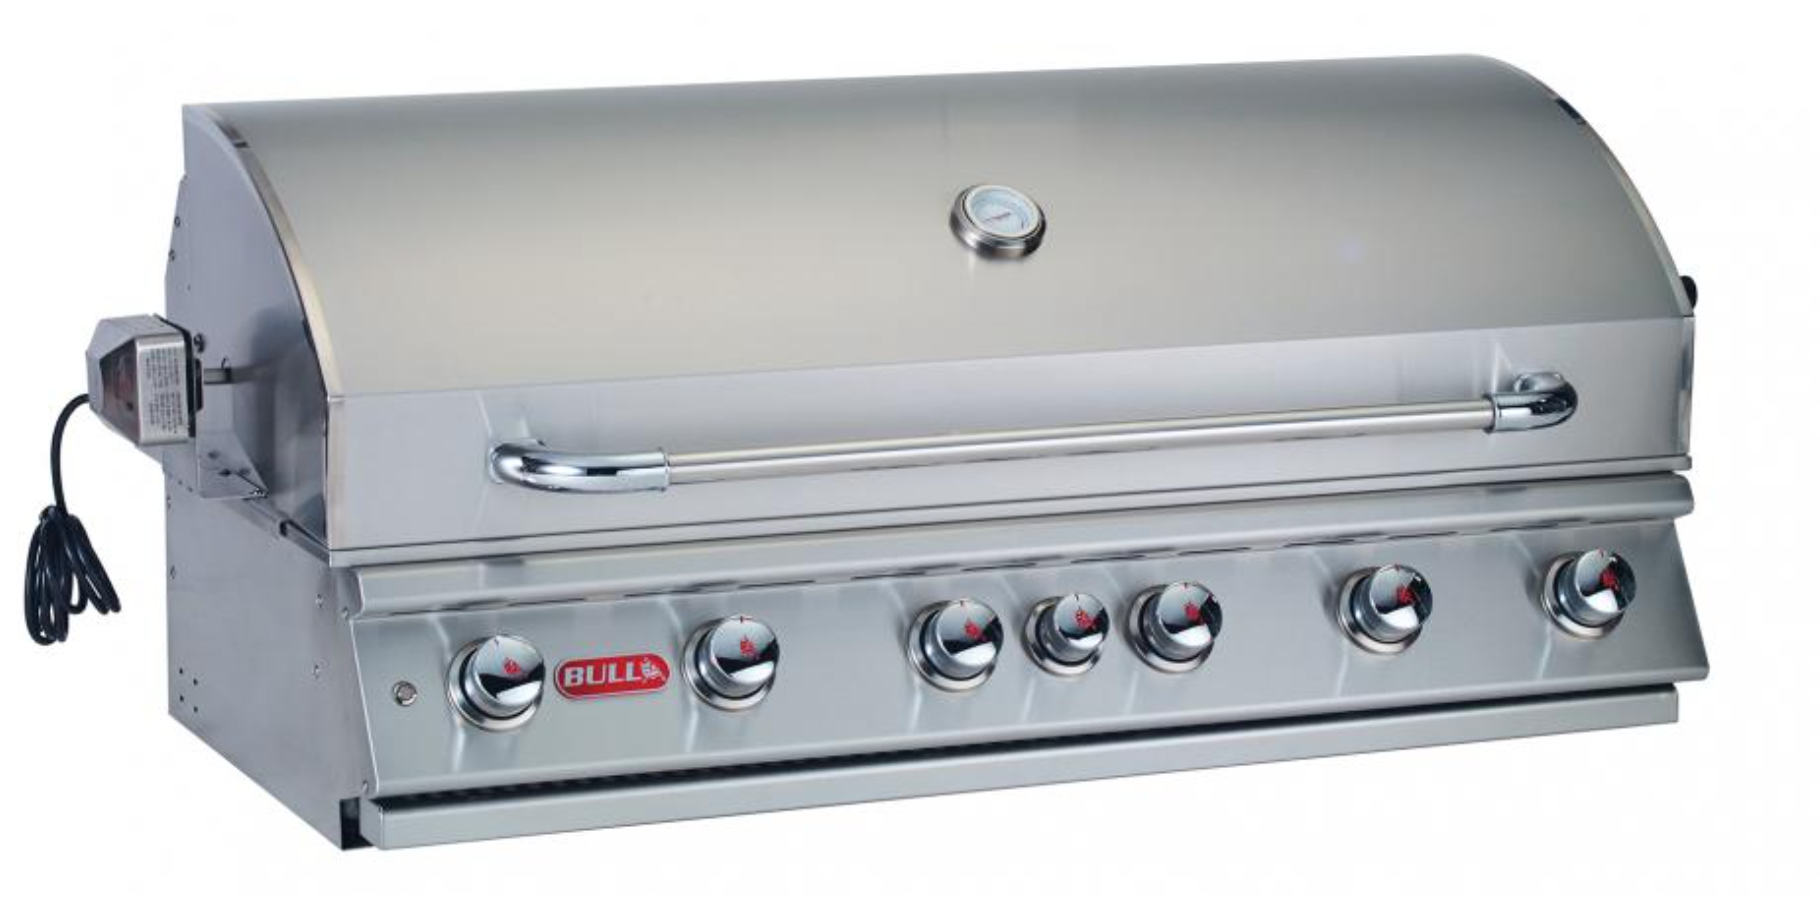 BULL OUTDOOR PRODUCTS Diablo 46 INCH BUILT IN GRILL 62648(LP) 62649 ...